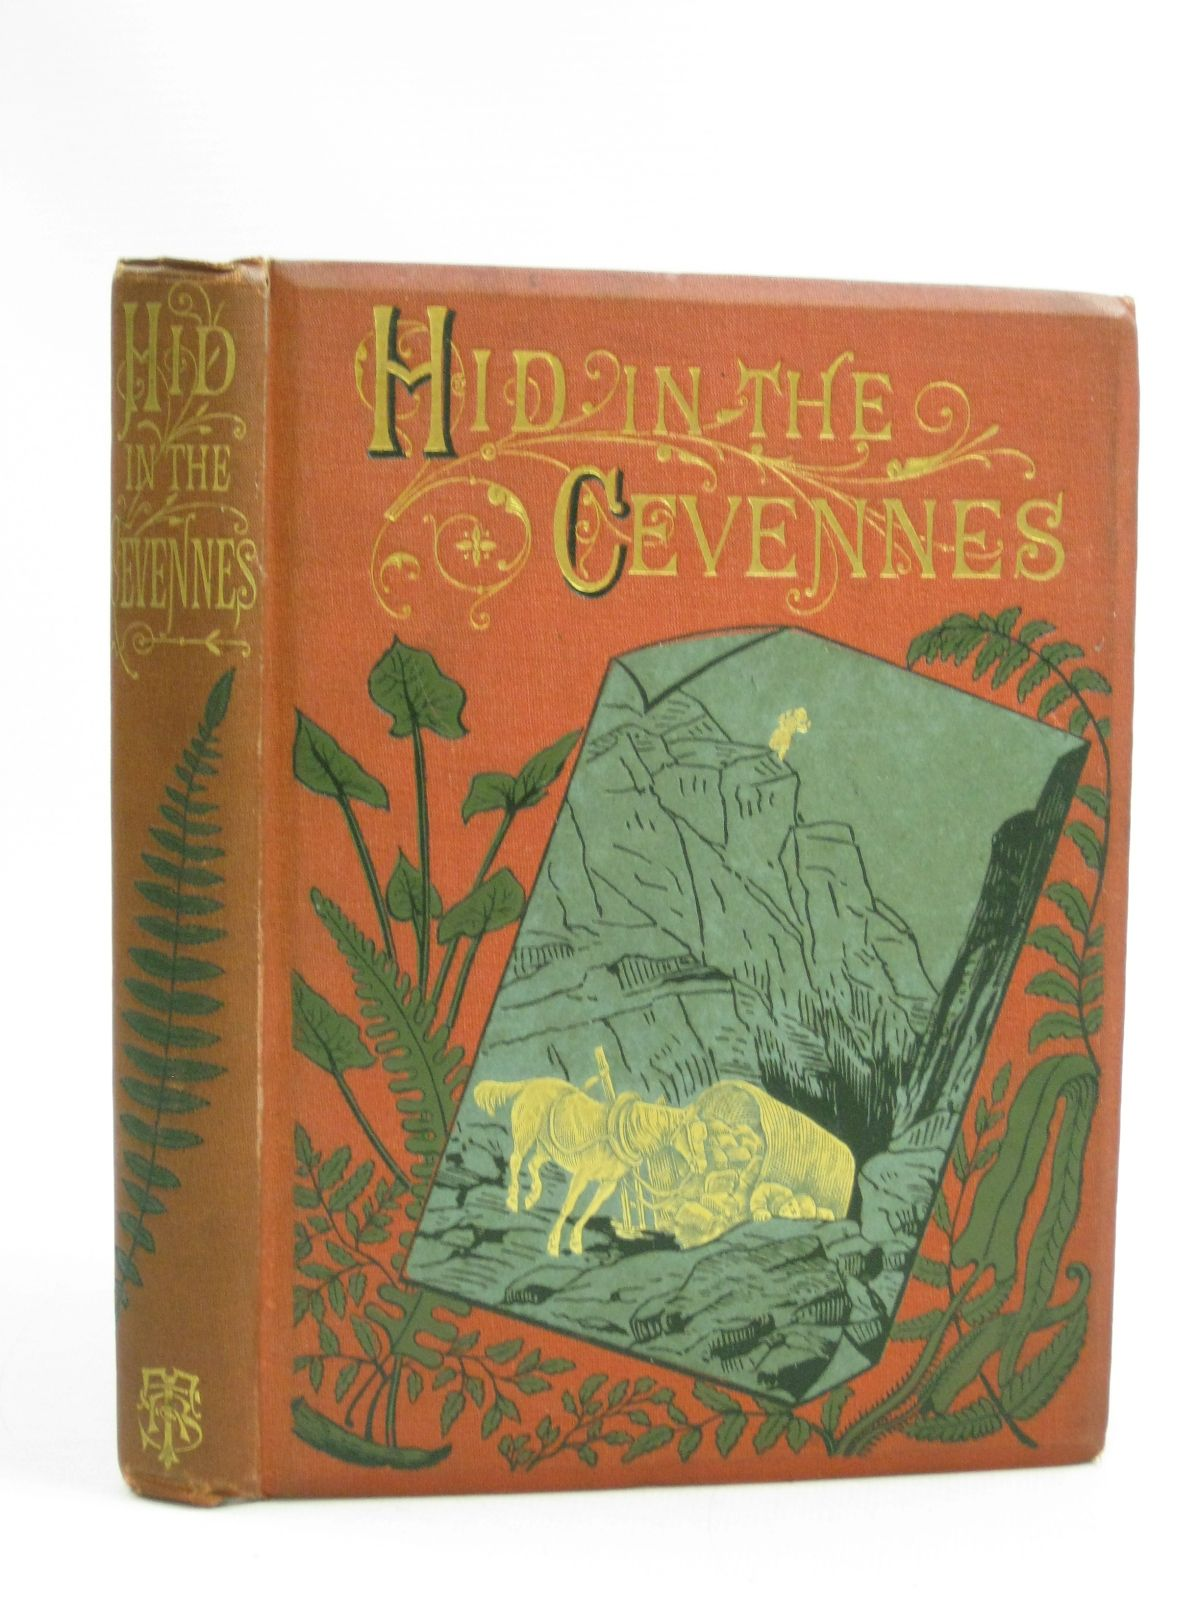 Photo of HID IN THE CEVENNES written by Moggridge, Blanche M. published by The Religious Tract Society (STOCK CODE: 1315046)  for sale by Stella & Rose's Books